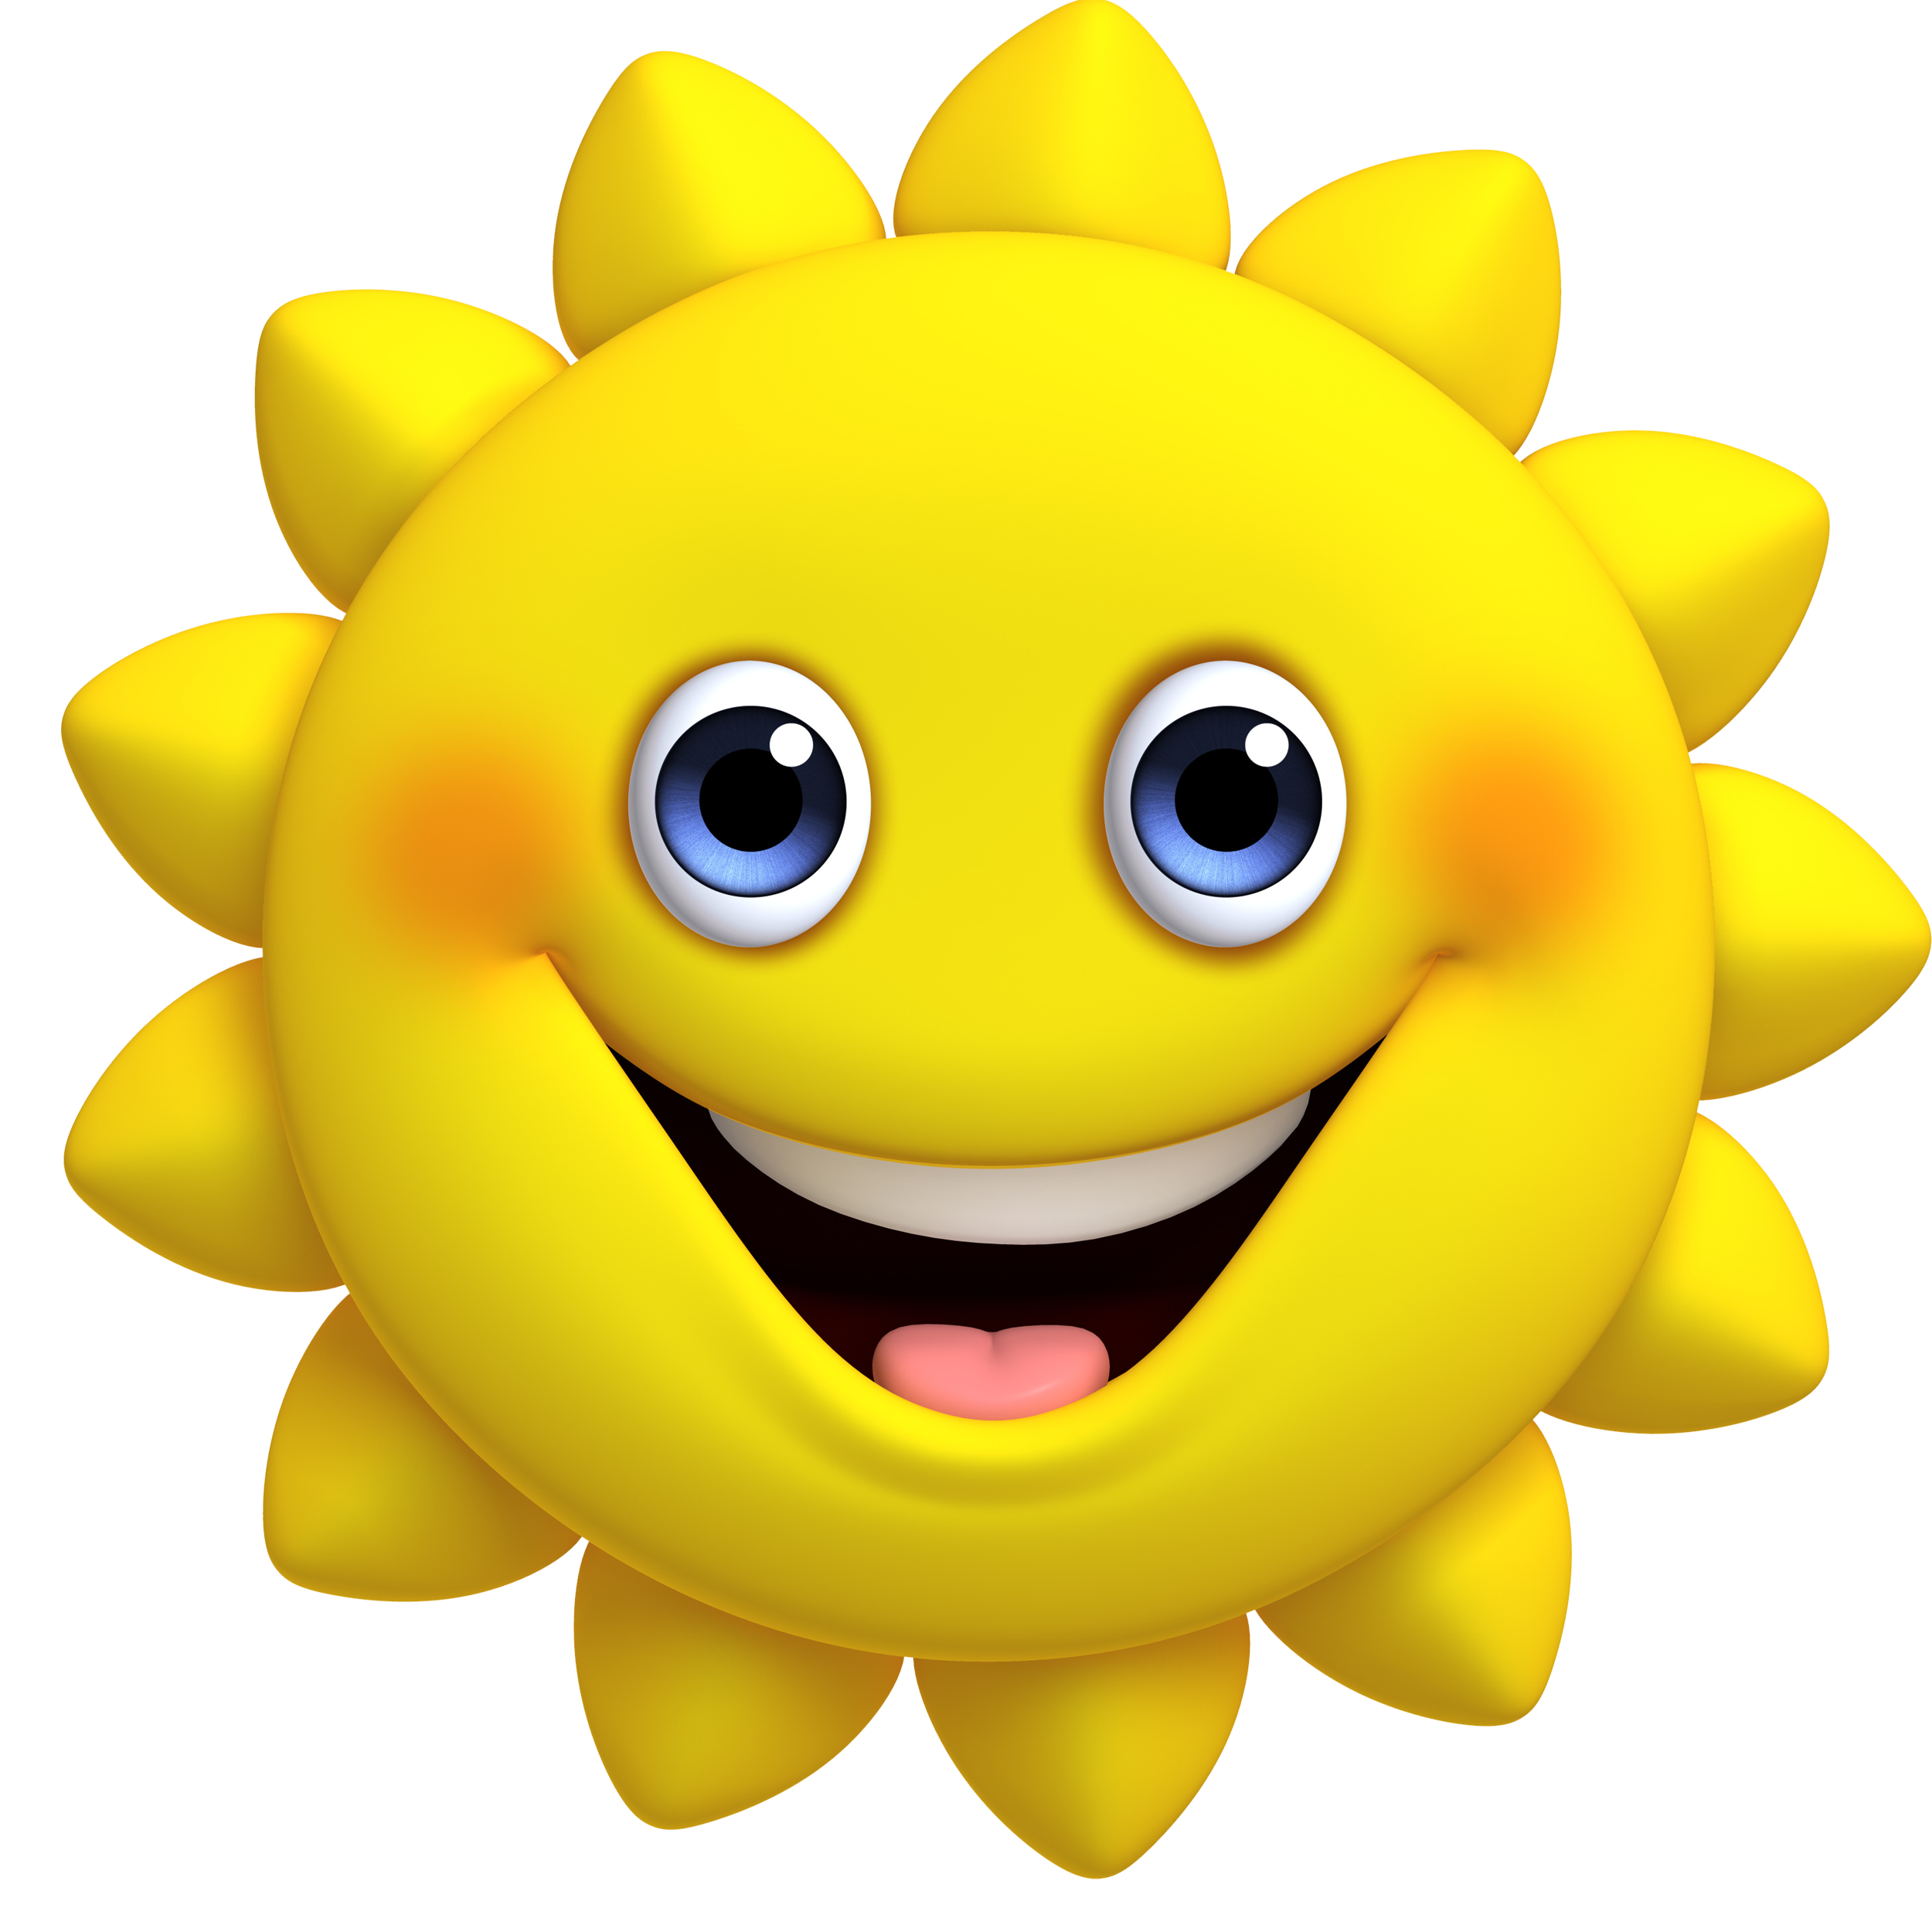 Cute sun smiling clipart clip freeuse Cartoon cute sun 2500*2500 transprent Png Free Download - Emoticon ... clip freeuse